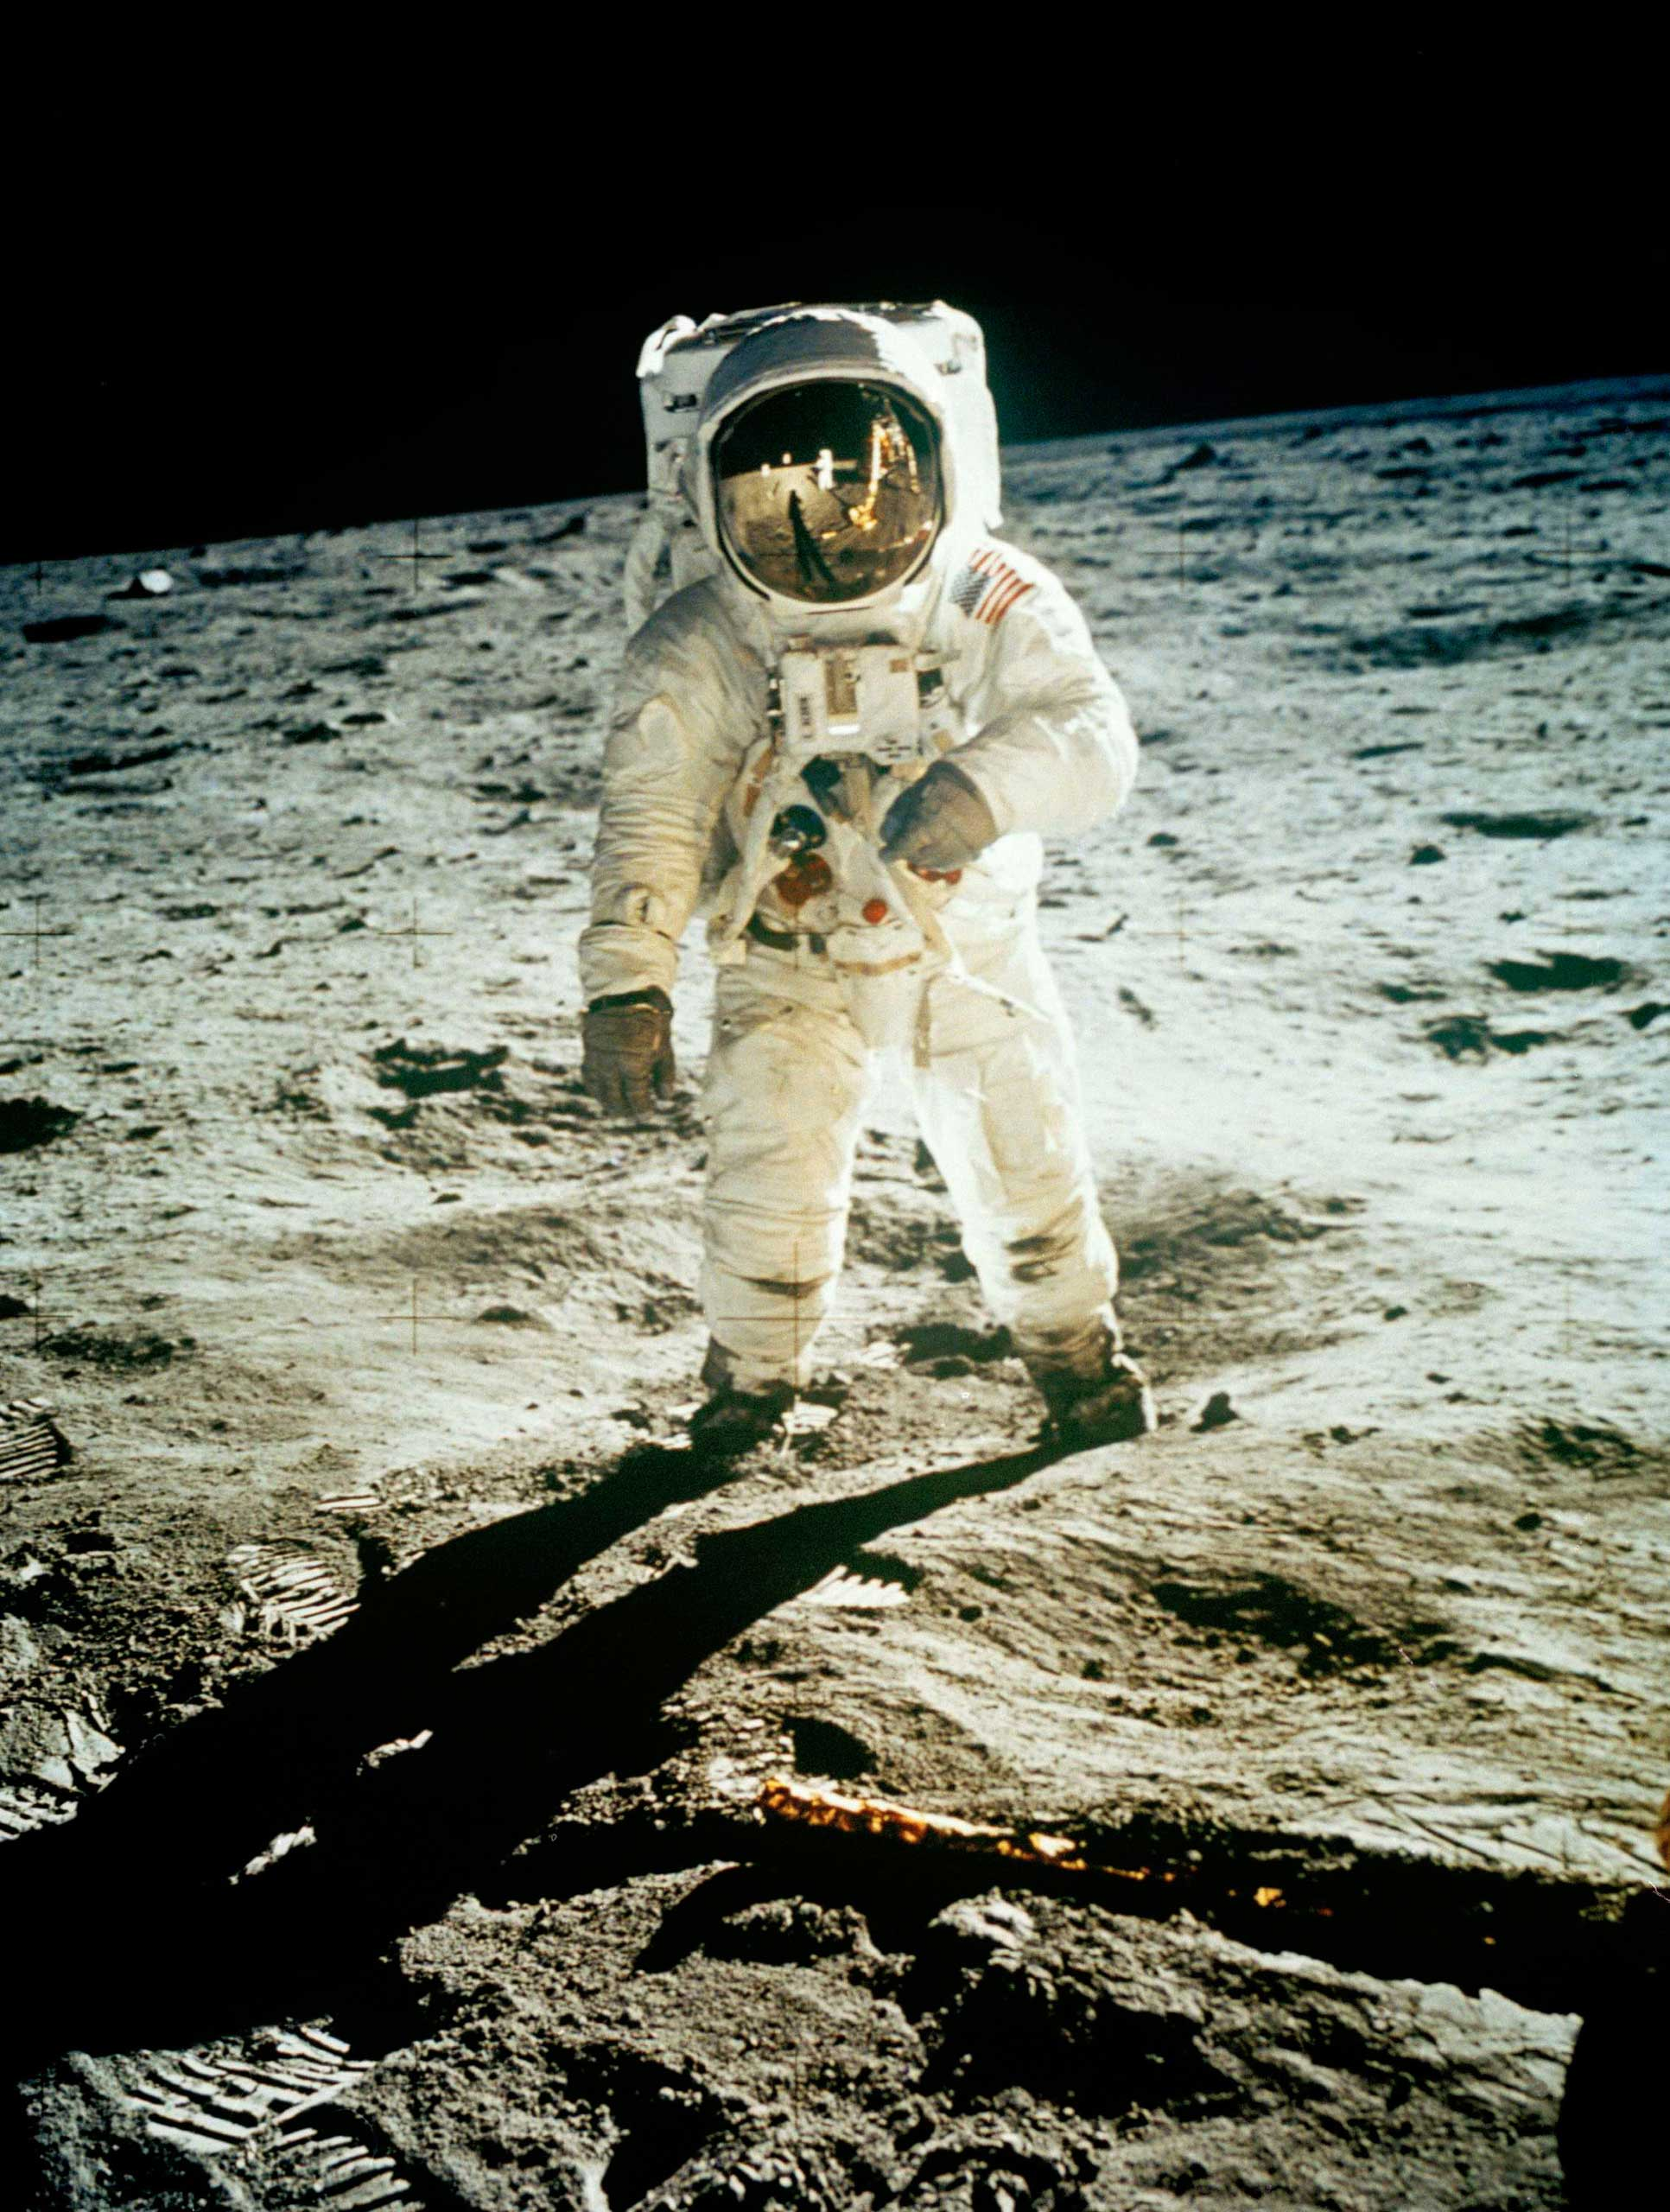 One small step for man, one giant leap for mankind  were the first words spoken on the moon by Neil Armstrong who can be seen in the reflection of Aldrin's helmet. There are actually no good photos of Armstrong while on the moon because he was the one holding the camera most of the time.